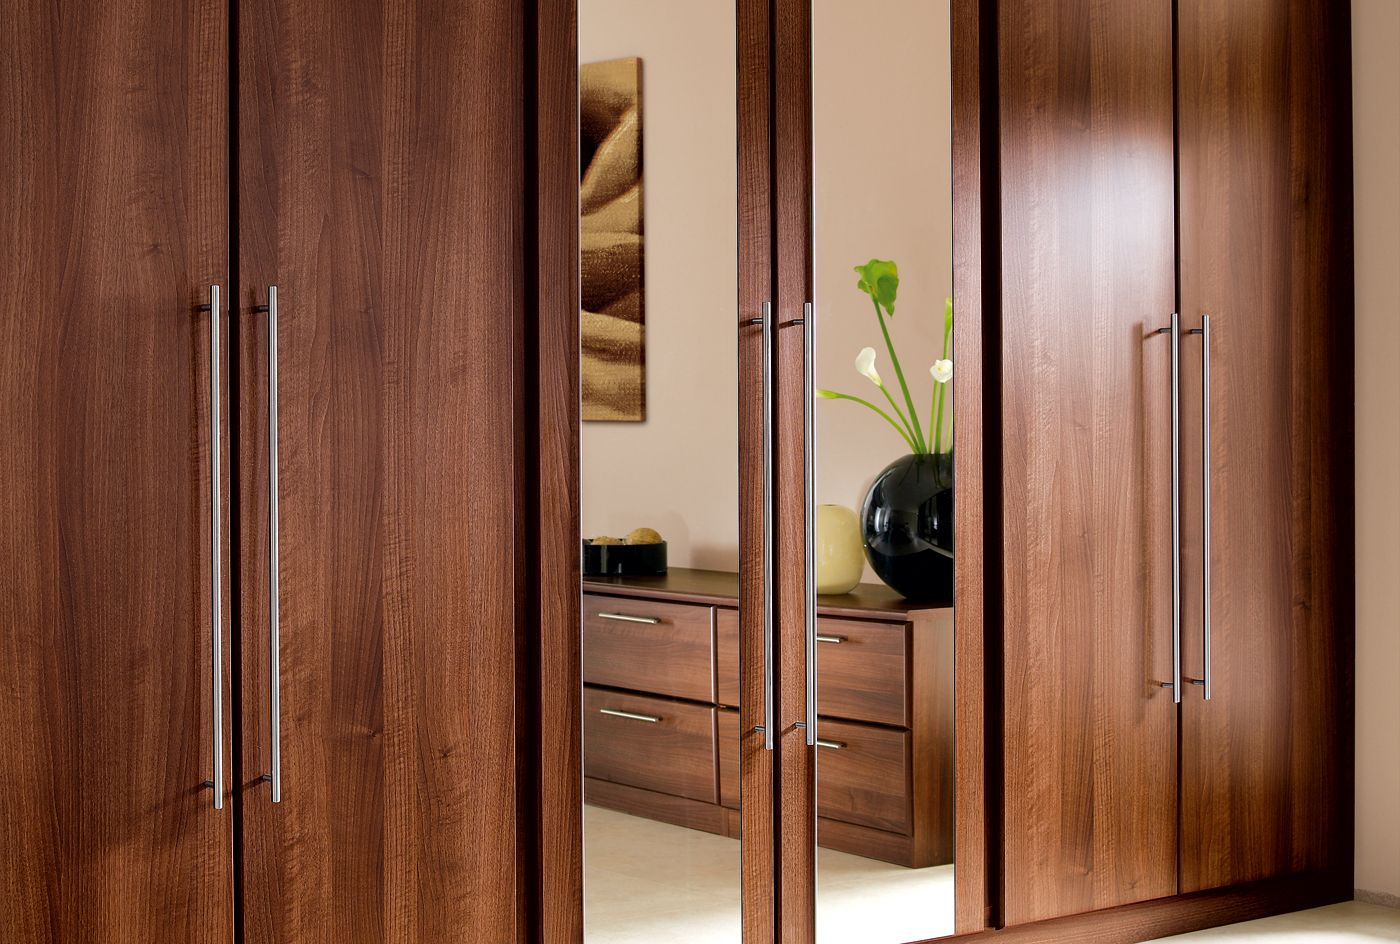 Mirror wardrobe doors are a wonderful feature of the for Bedroom ideas with built in wardrobes